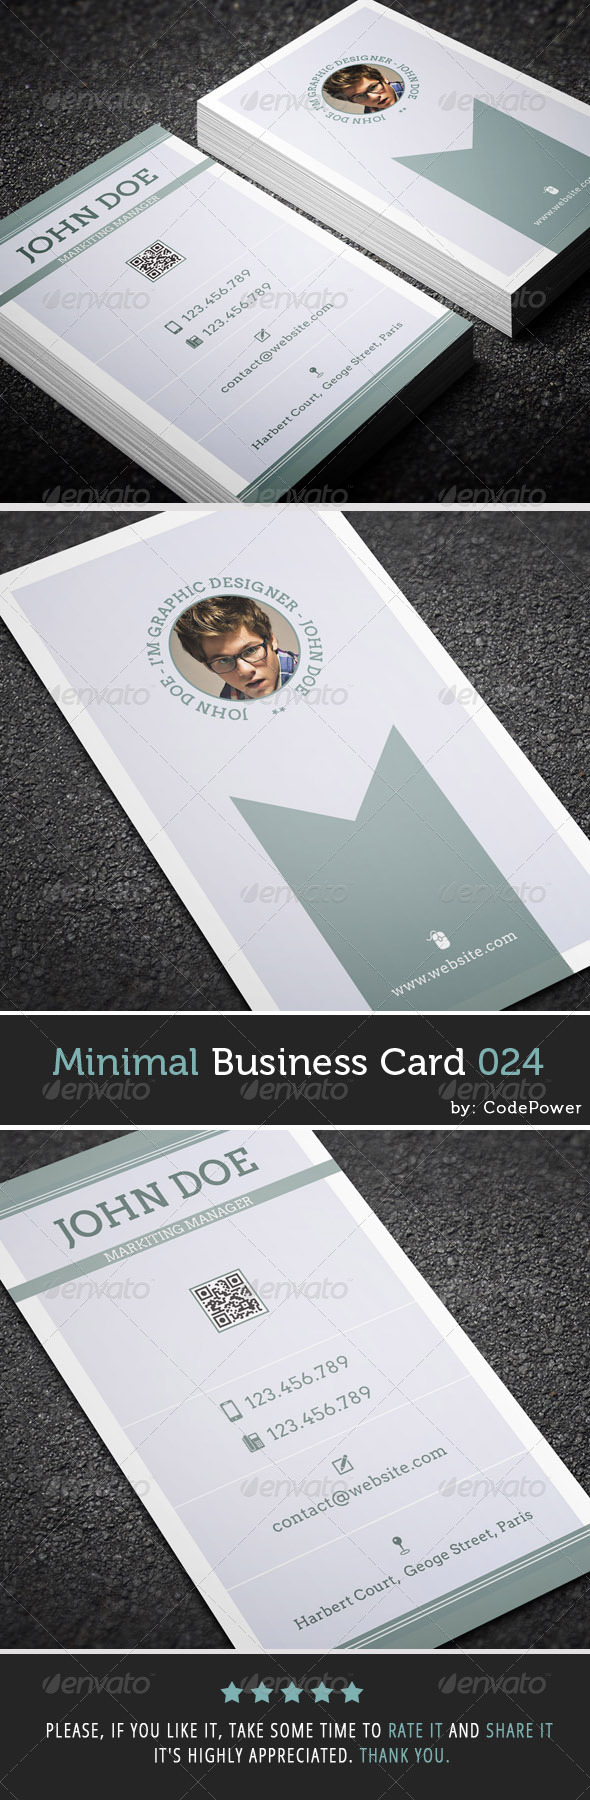 GraphicRiver Minimal Business Card 024 7605495